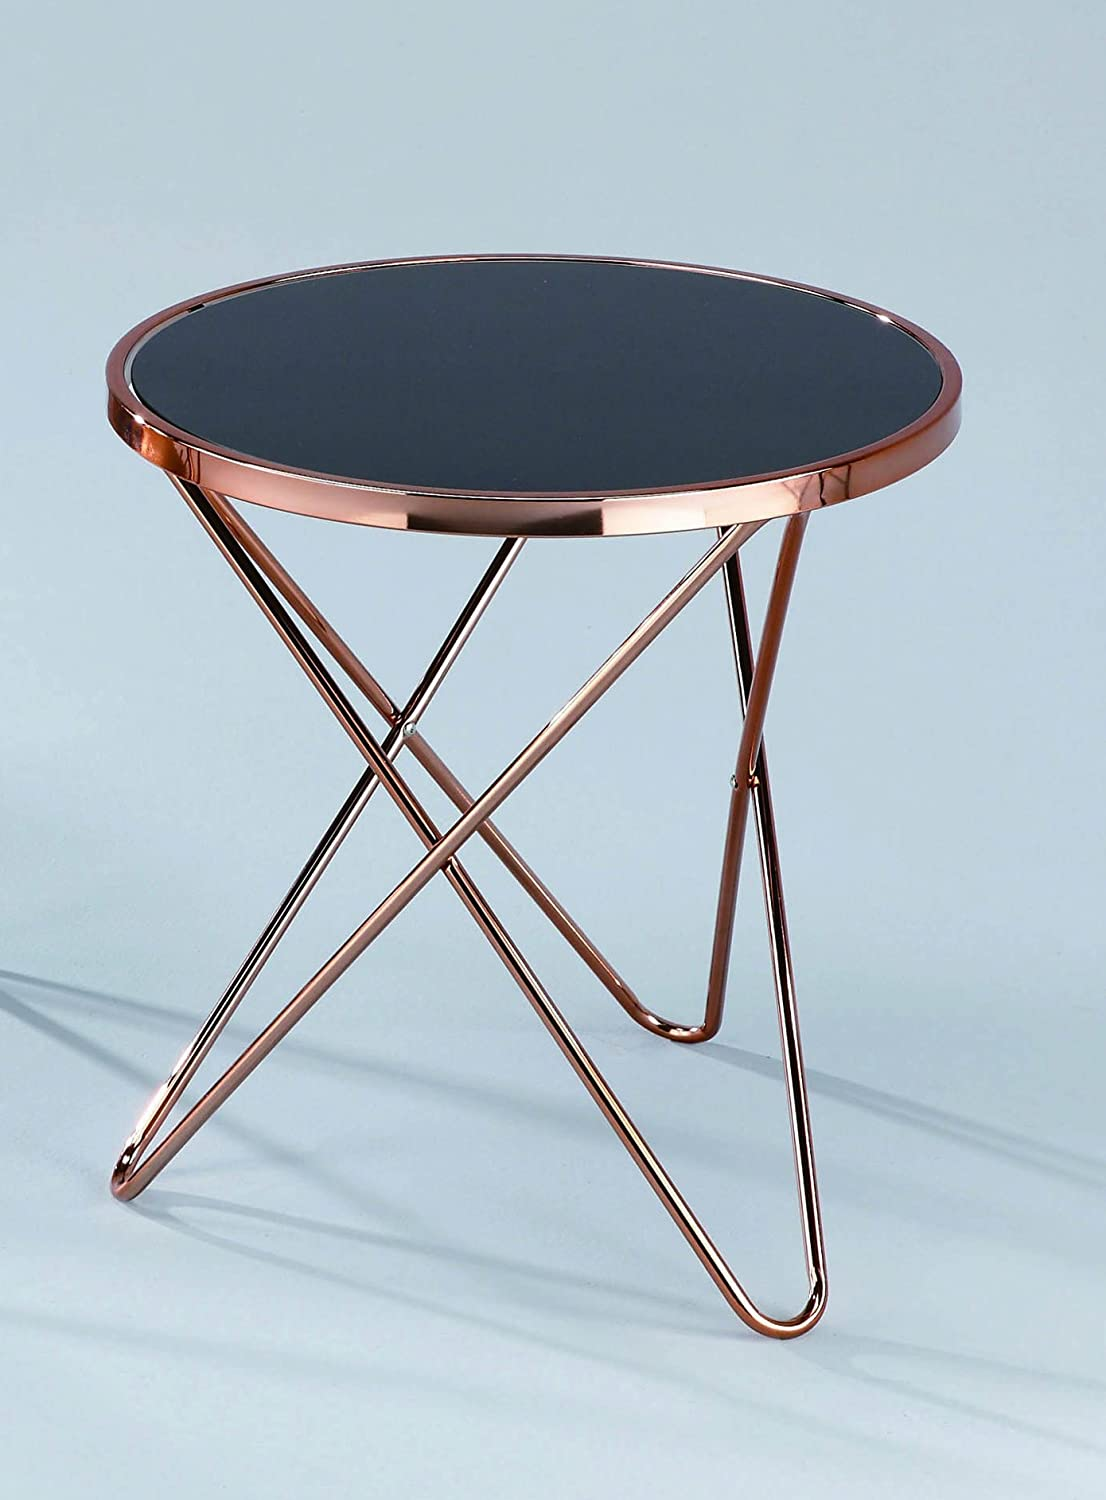 Aspect porto round sidecoffeeendlamp table metal copperblack aspect porto round sidecoffeeendlamp table metal copperblack amazon kitchen home greentooth Images